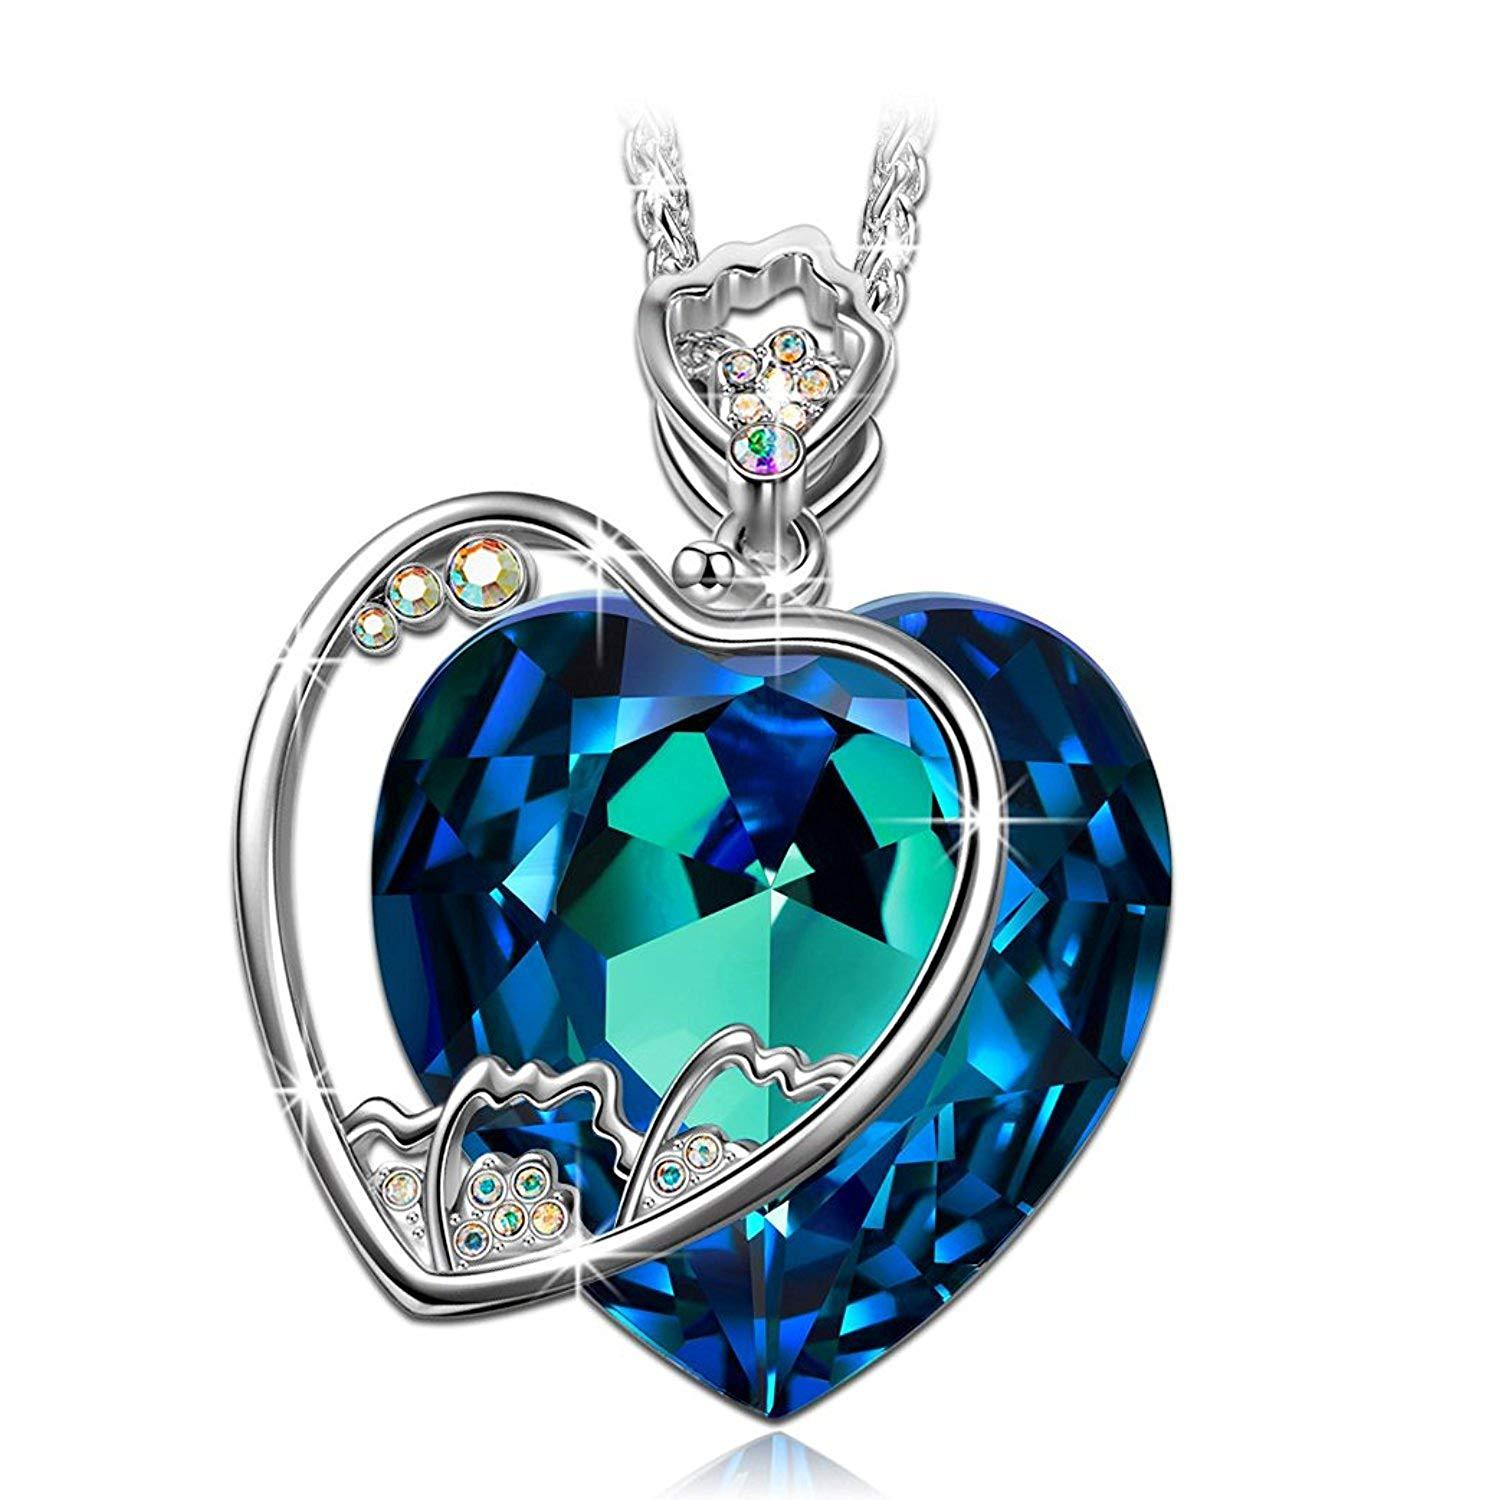 129f4db4bc8dd Heart Necklace -Buy One Get 30% Off (Click The Coupon)- ♥Christmas Jewelry  Gifts for Mommy♥ Bermuda Blue Crystals from Swarovski Pendant Necklace